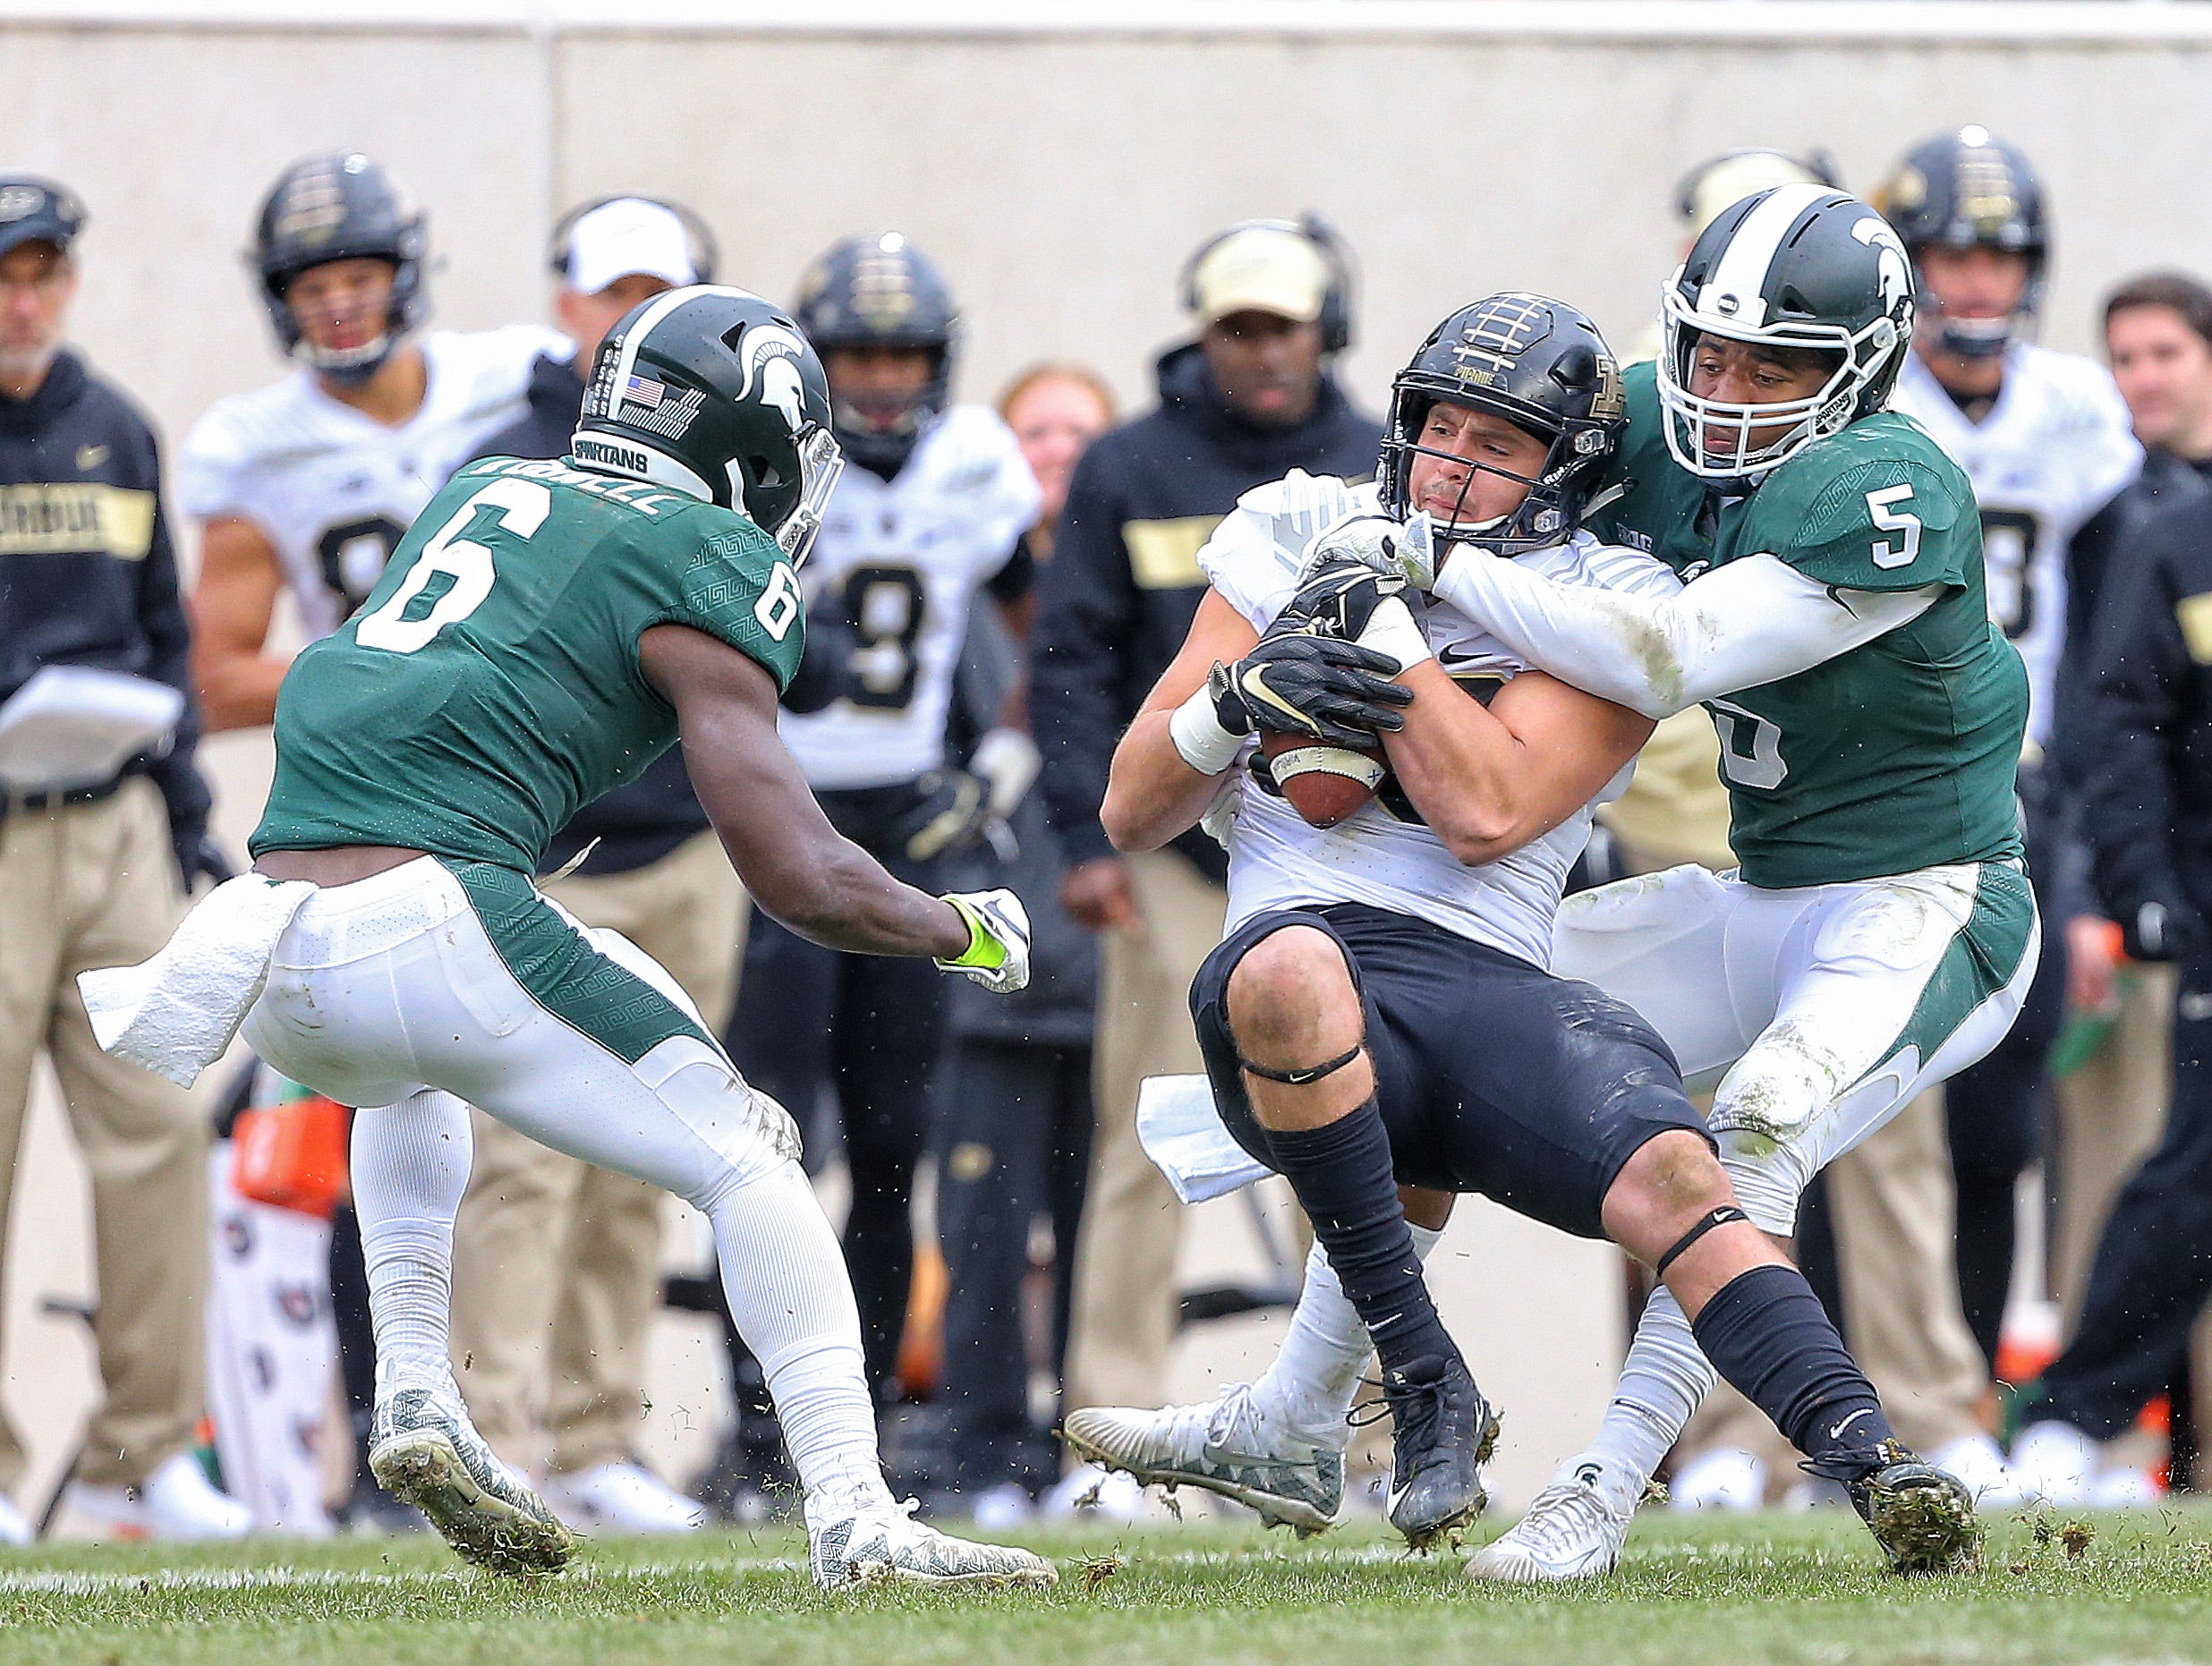 Oct 27, 2018; East Lansing, MI, USA; Purdue Boilermakers tight end Brycen Hopkins (89) is tackled by Michigan State Spartans linebacker Andrew Dowell (5) during the first quarter at Spartan Stadium. Mandatory Credit: Mike Carter-USA TODAY Sports